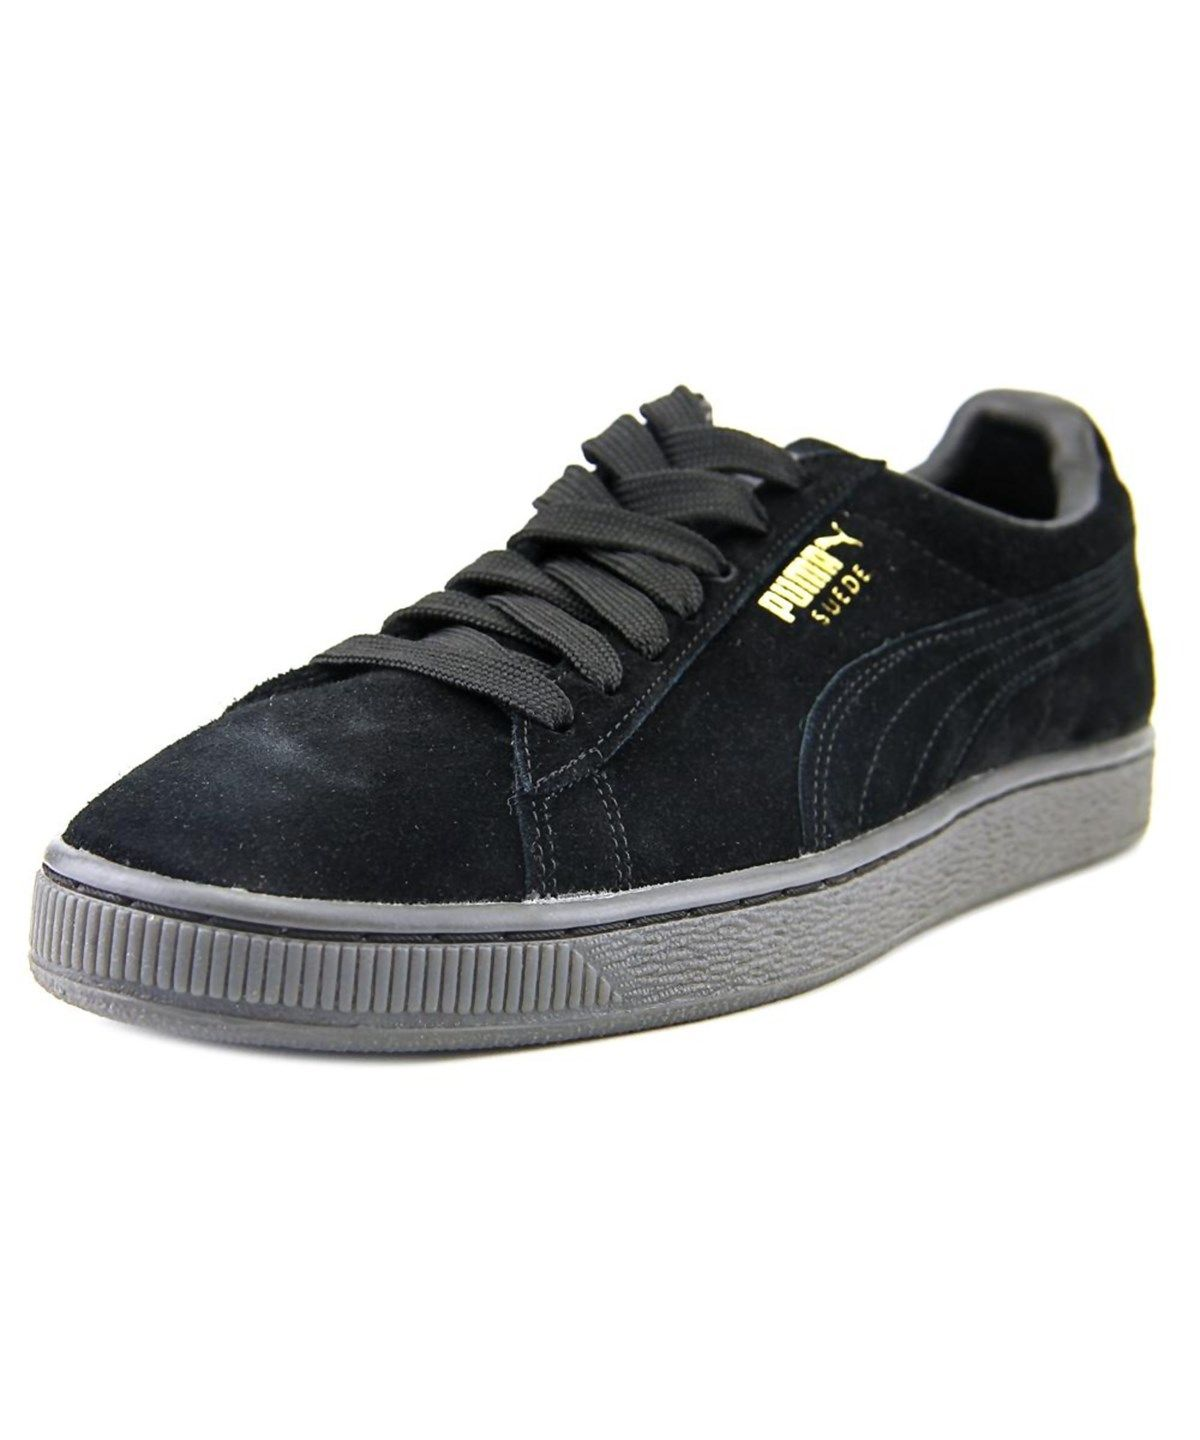 PUMA. Black Puma ShoesBlack ...